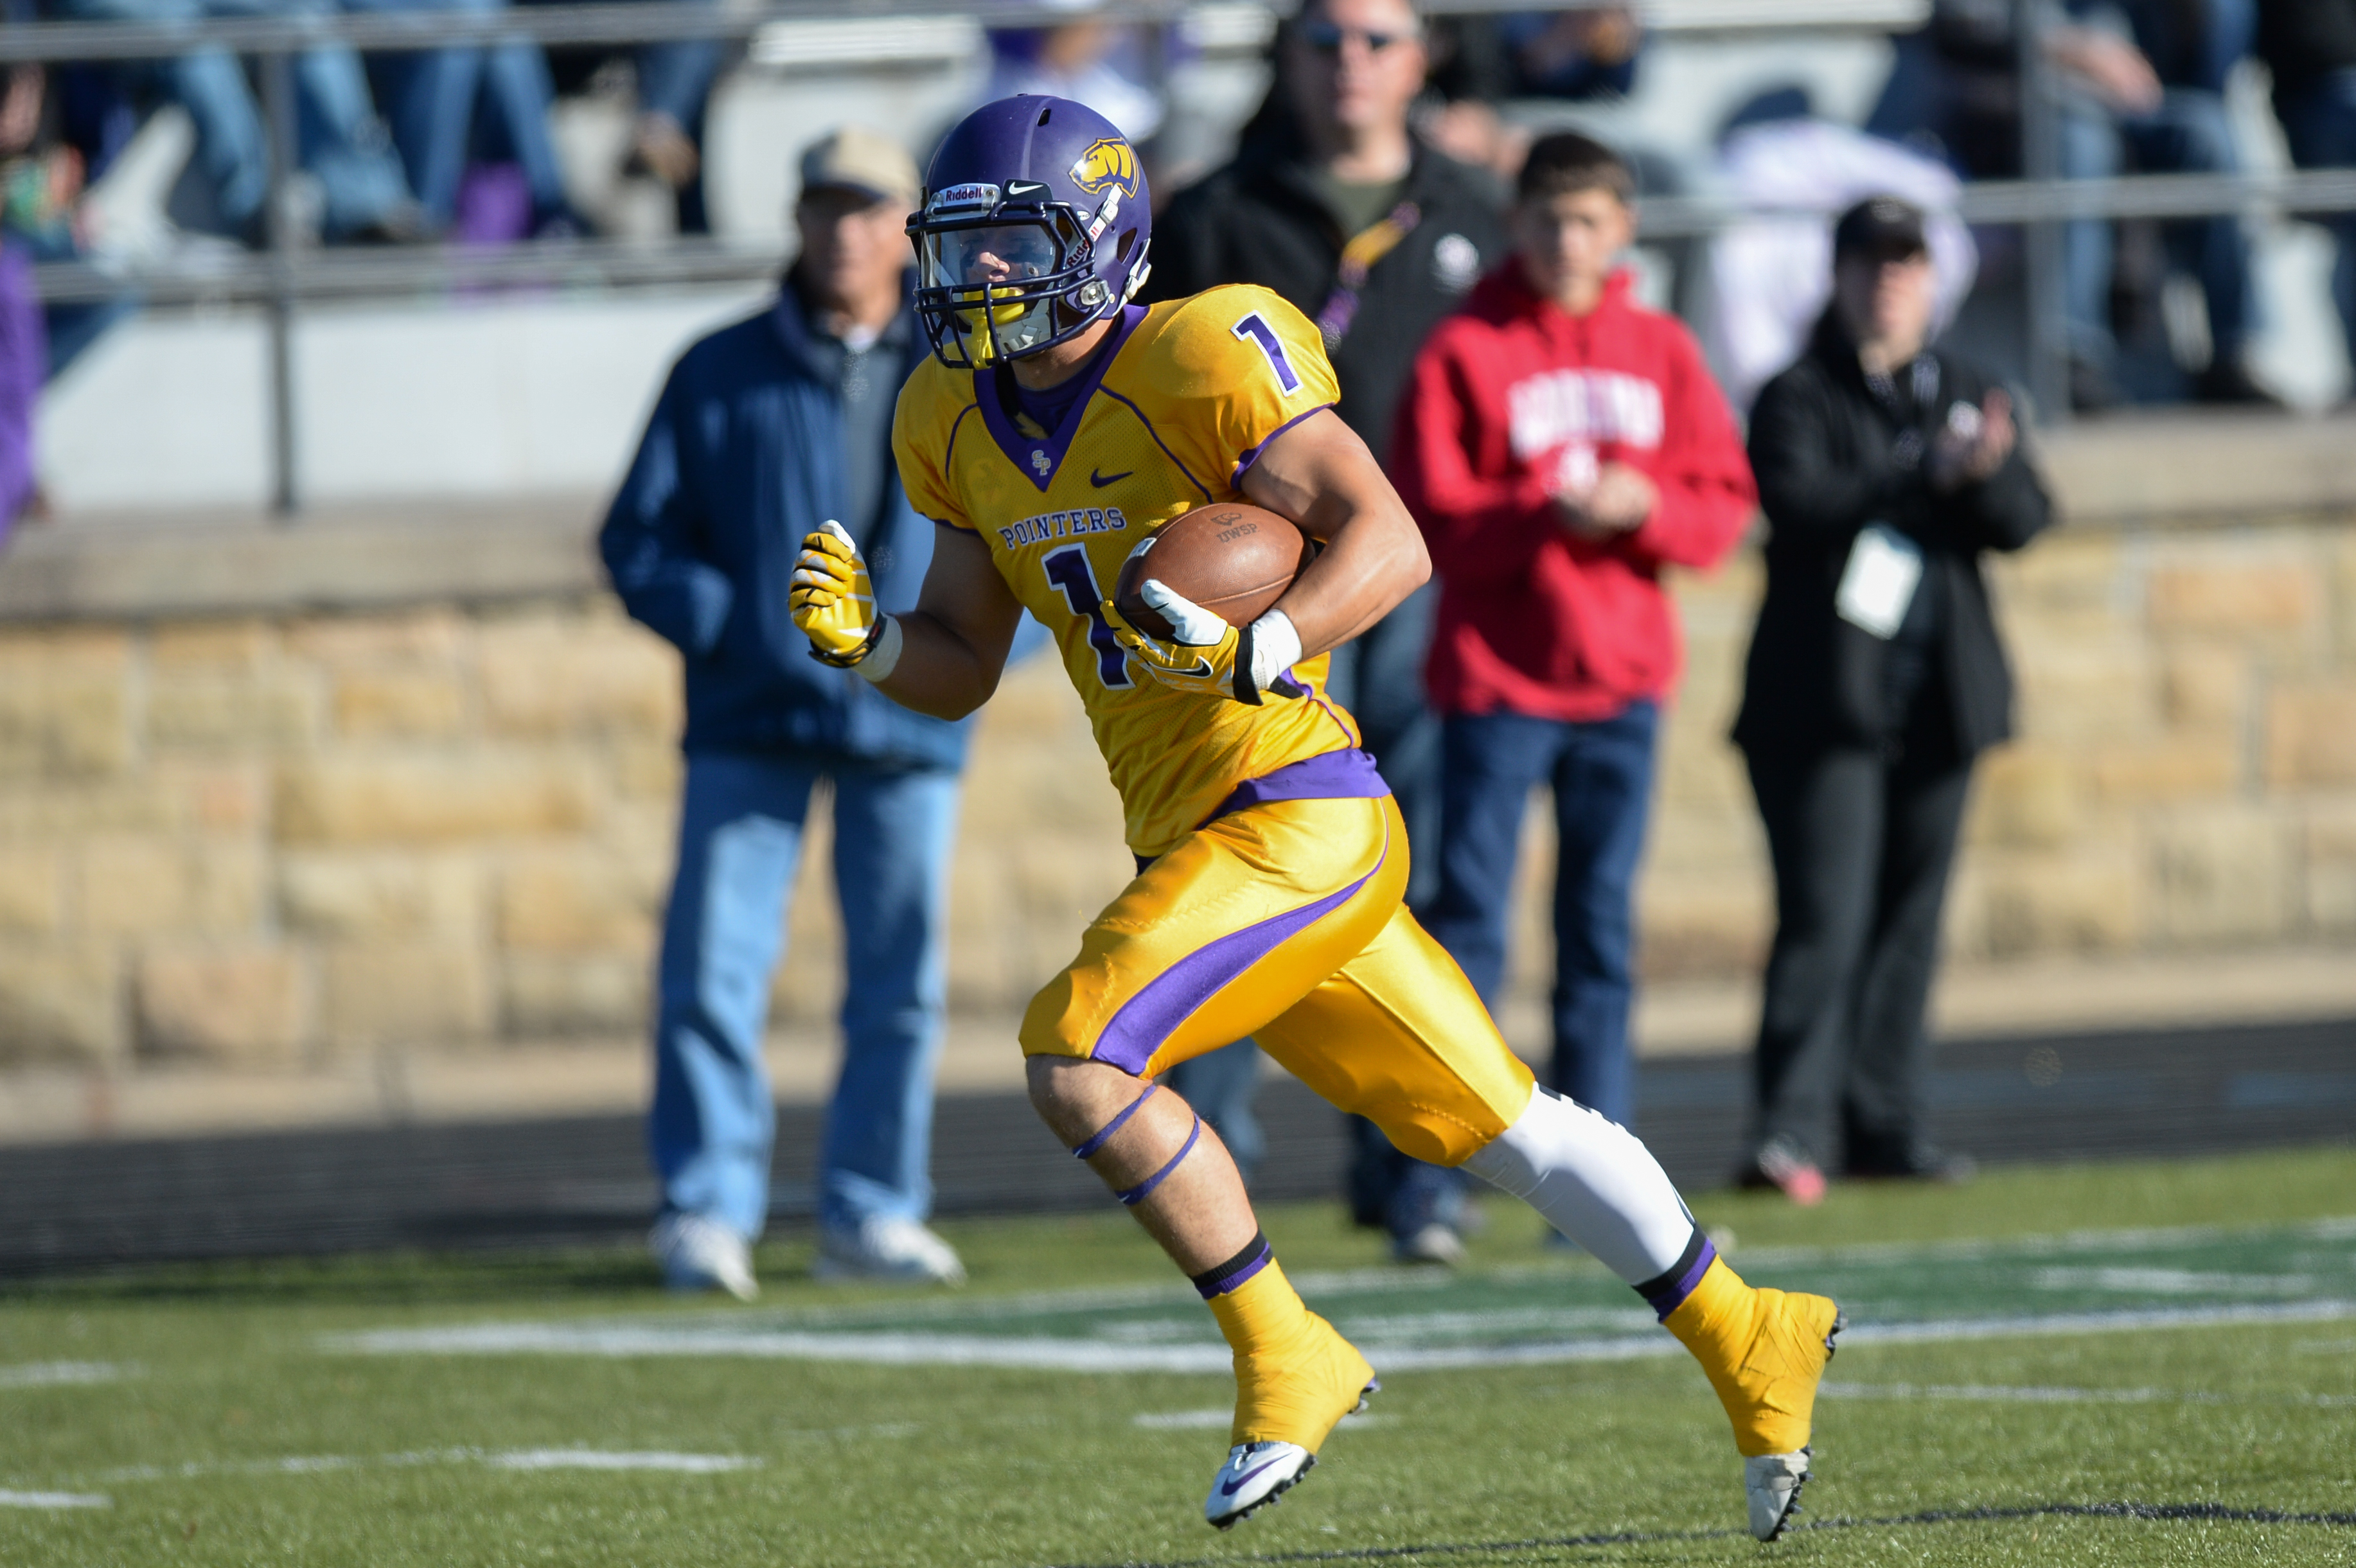 UWSP Football Improves to 5-0 | The Pointer